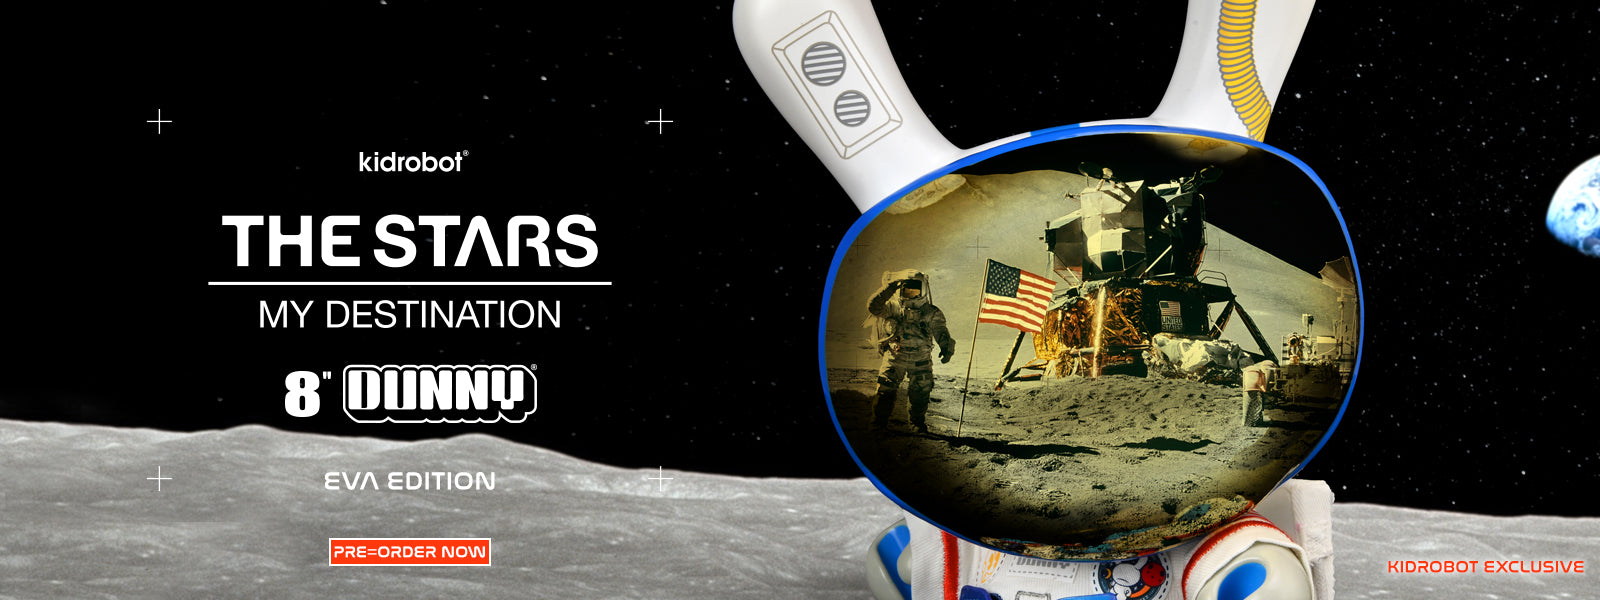 Kidrobot.com Exclusive The Stars My Destination Astronaut Dunny - EVA Edition - Pre-order Now